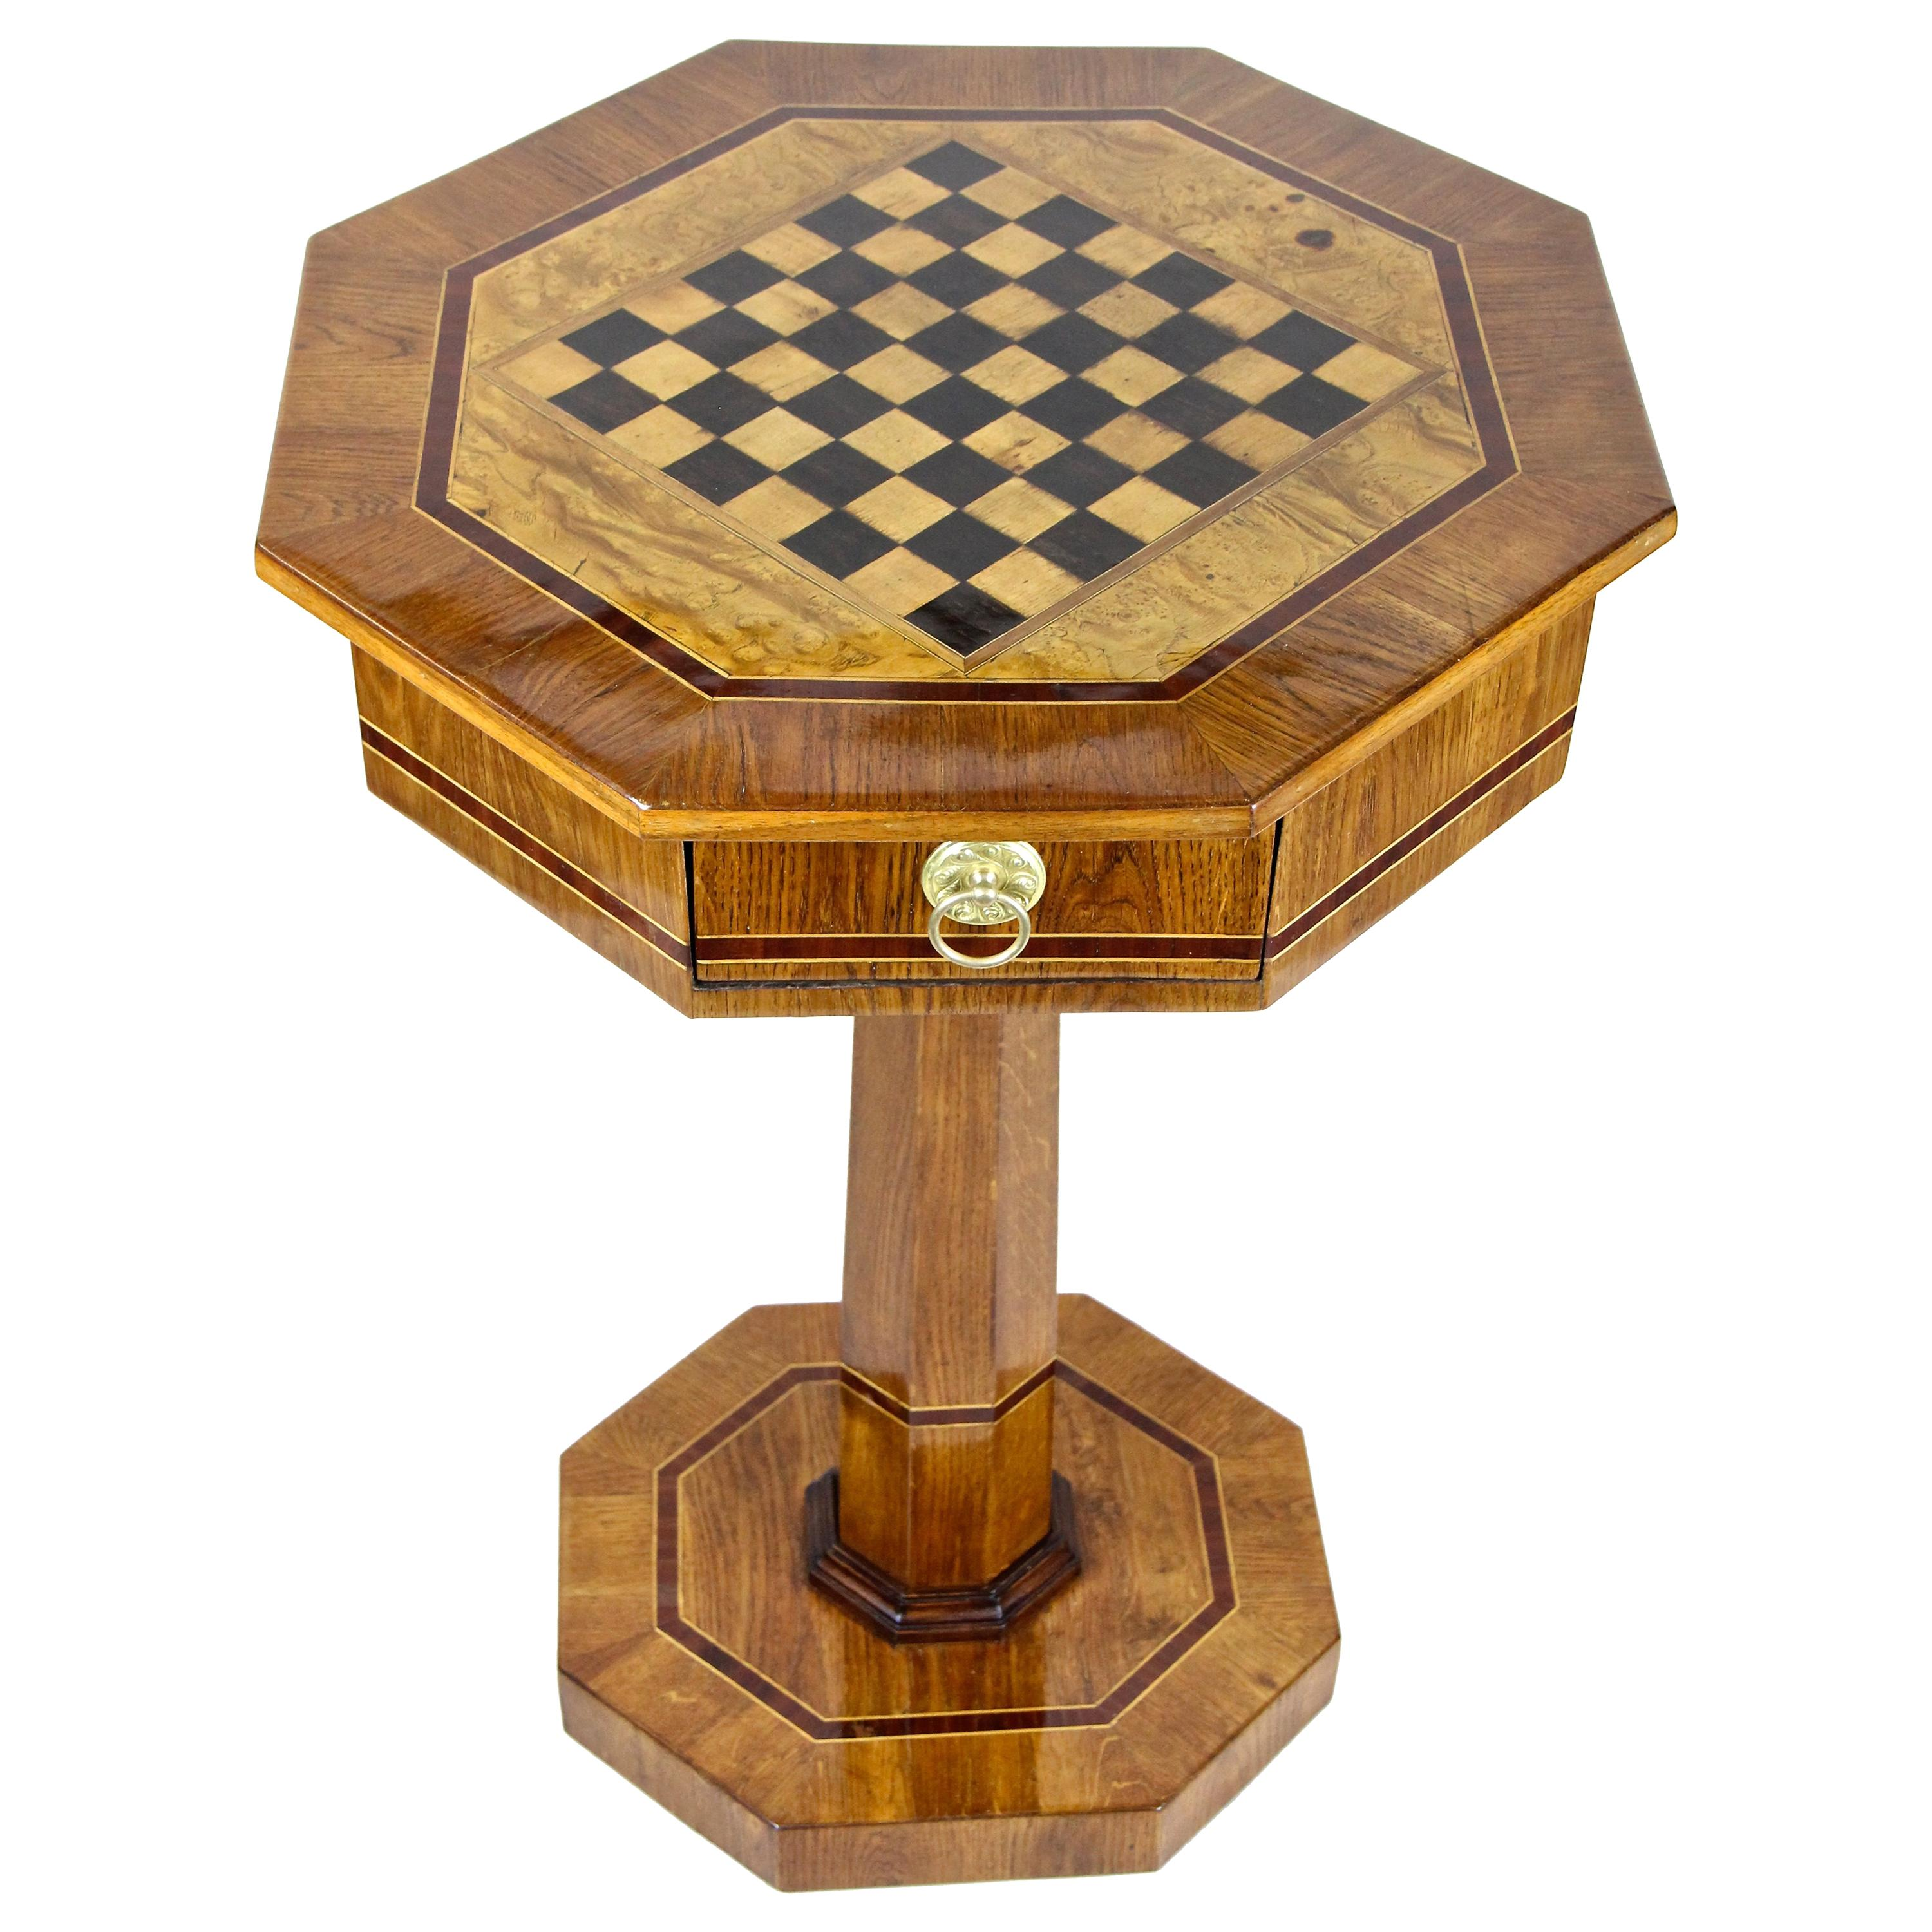 Chess Table Biedermeier Chess Table Oakwood Austria Circa 1840